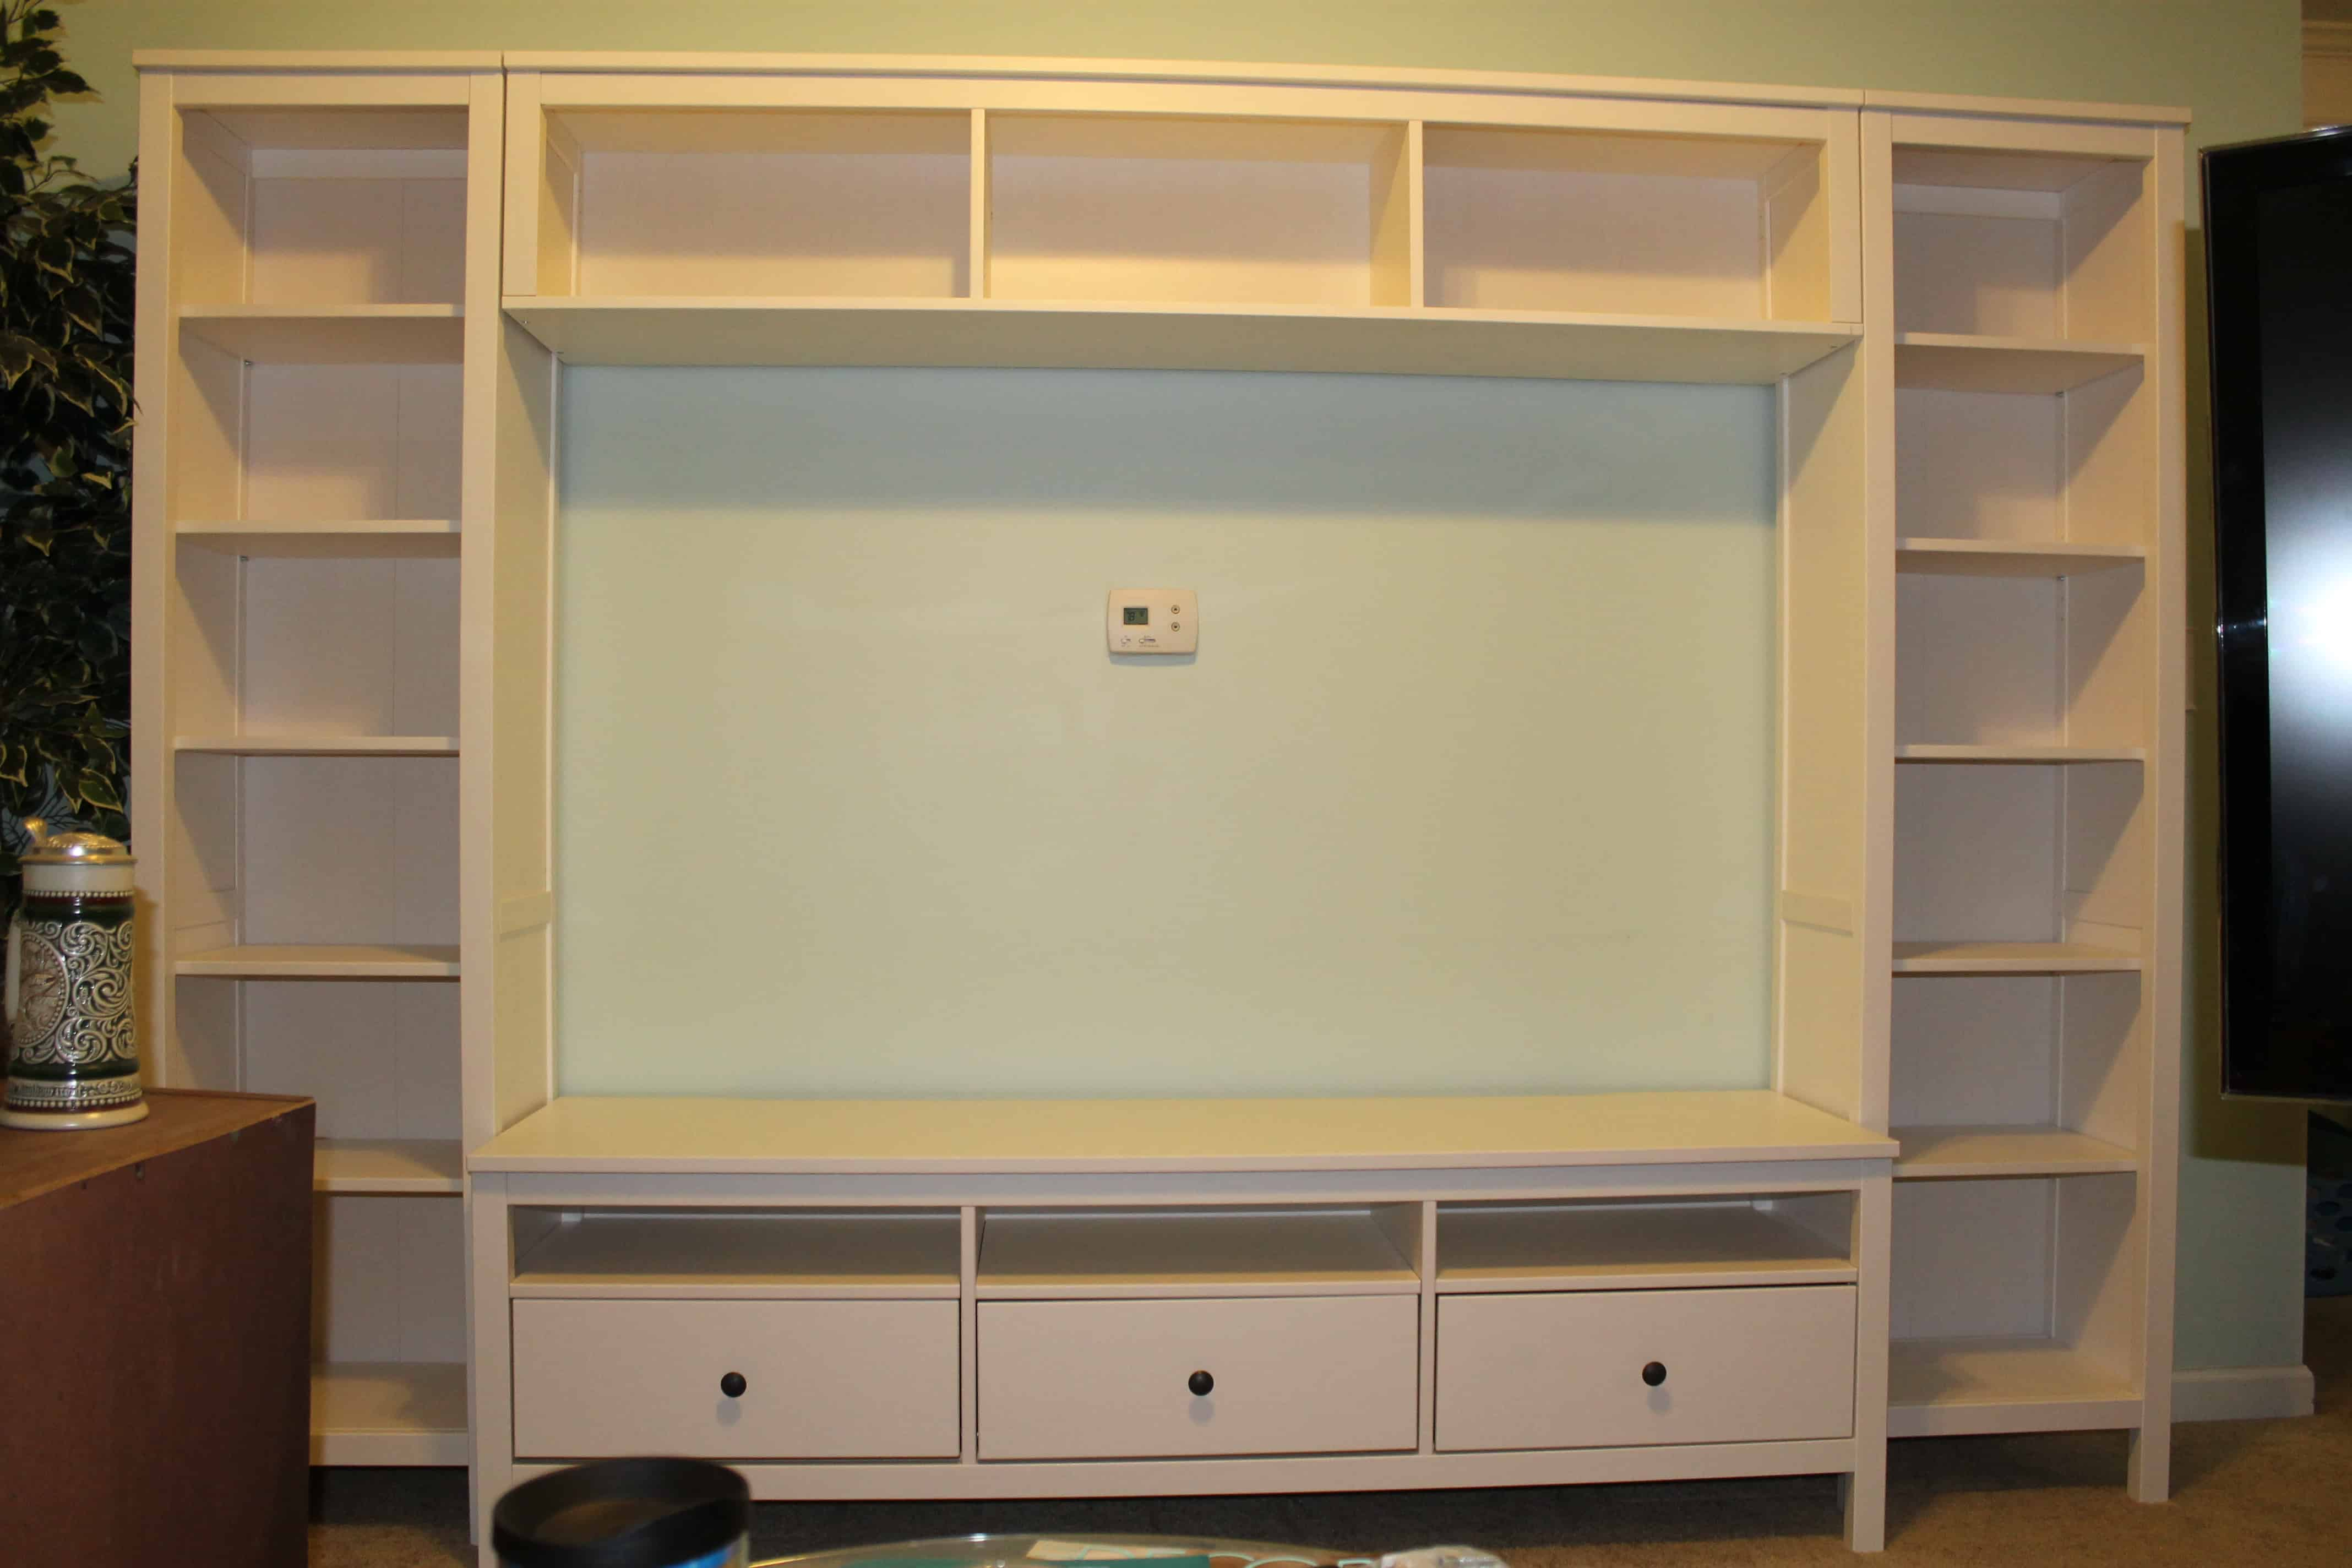 Ikea hemnes entertainment center - Our Tv Was Just Too Big For The Next Smallest Sized Stand So There Is A Bit Of Extra Room Around The Tv I Said That Means Its Time To Head To